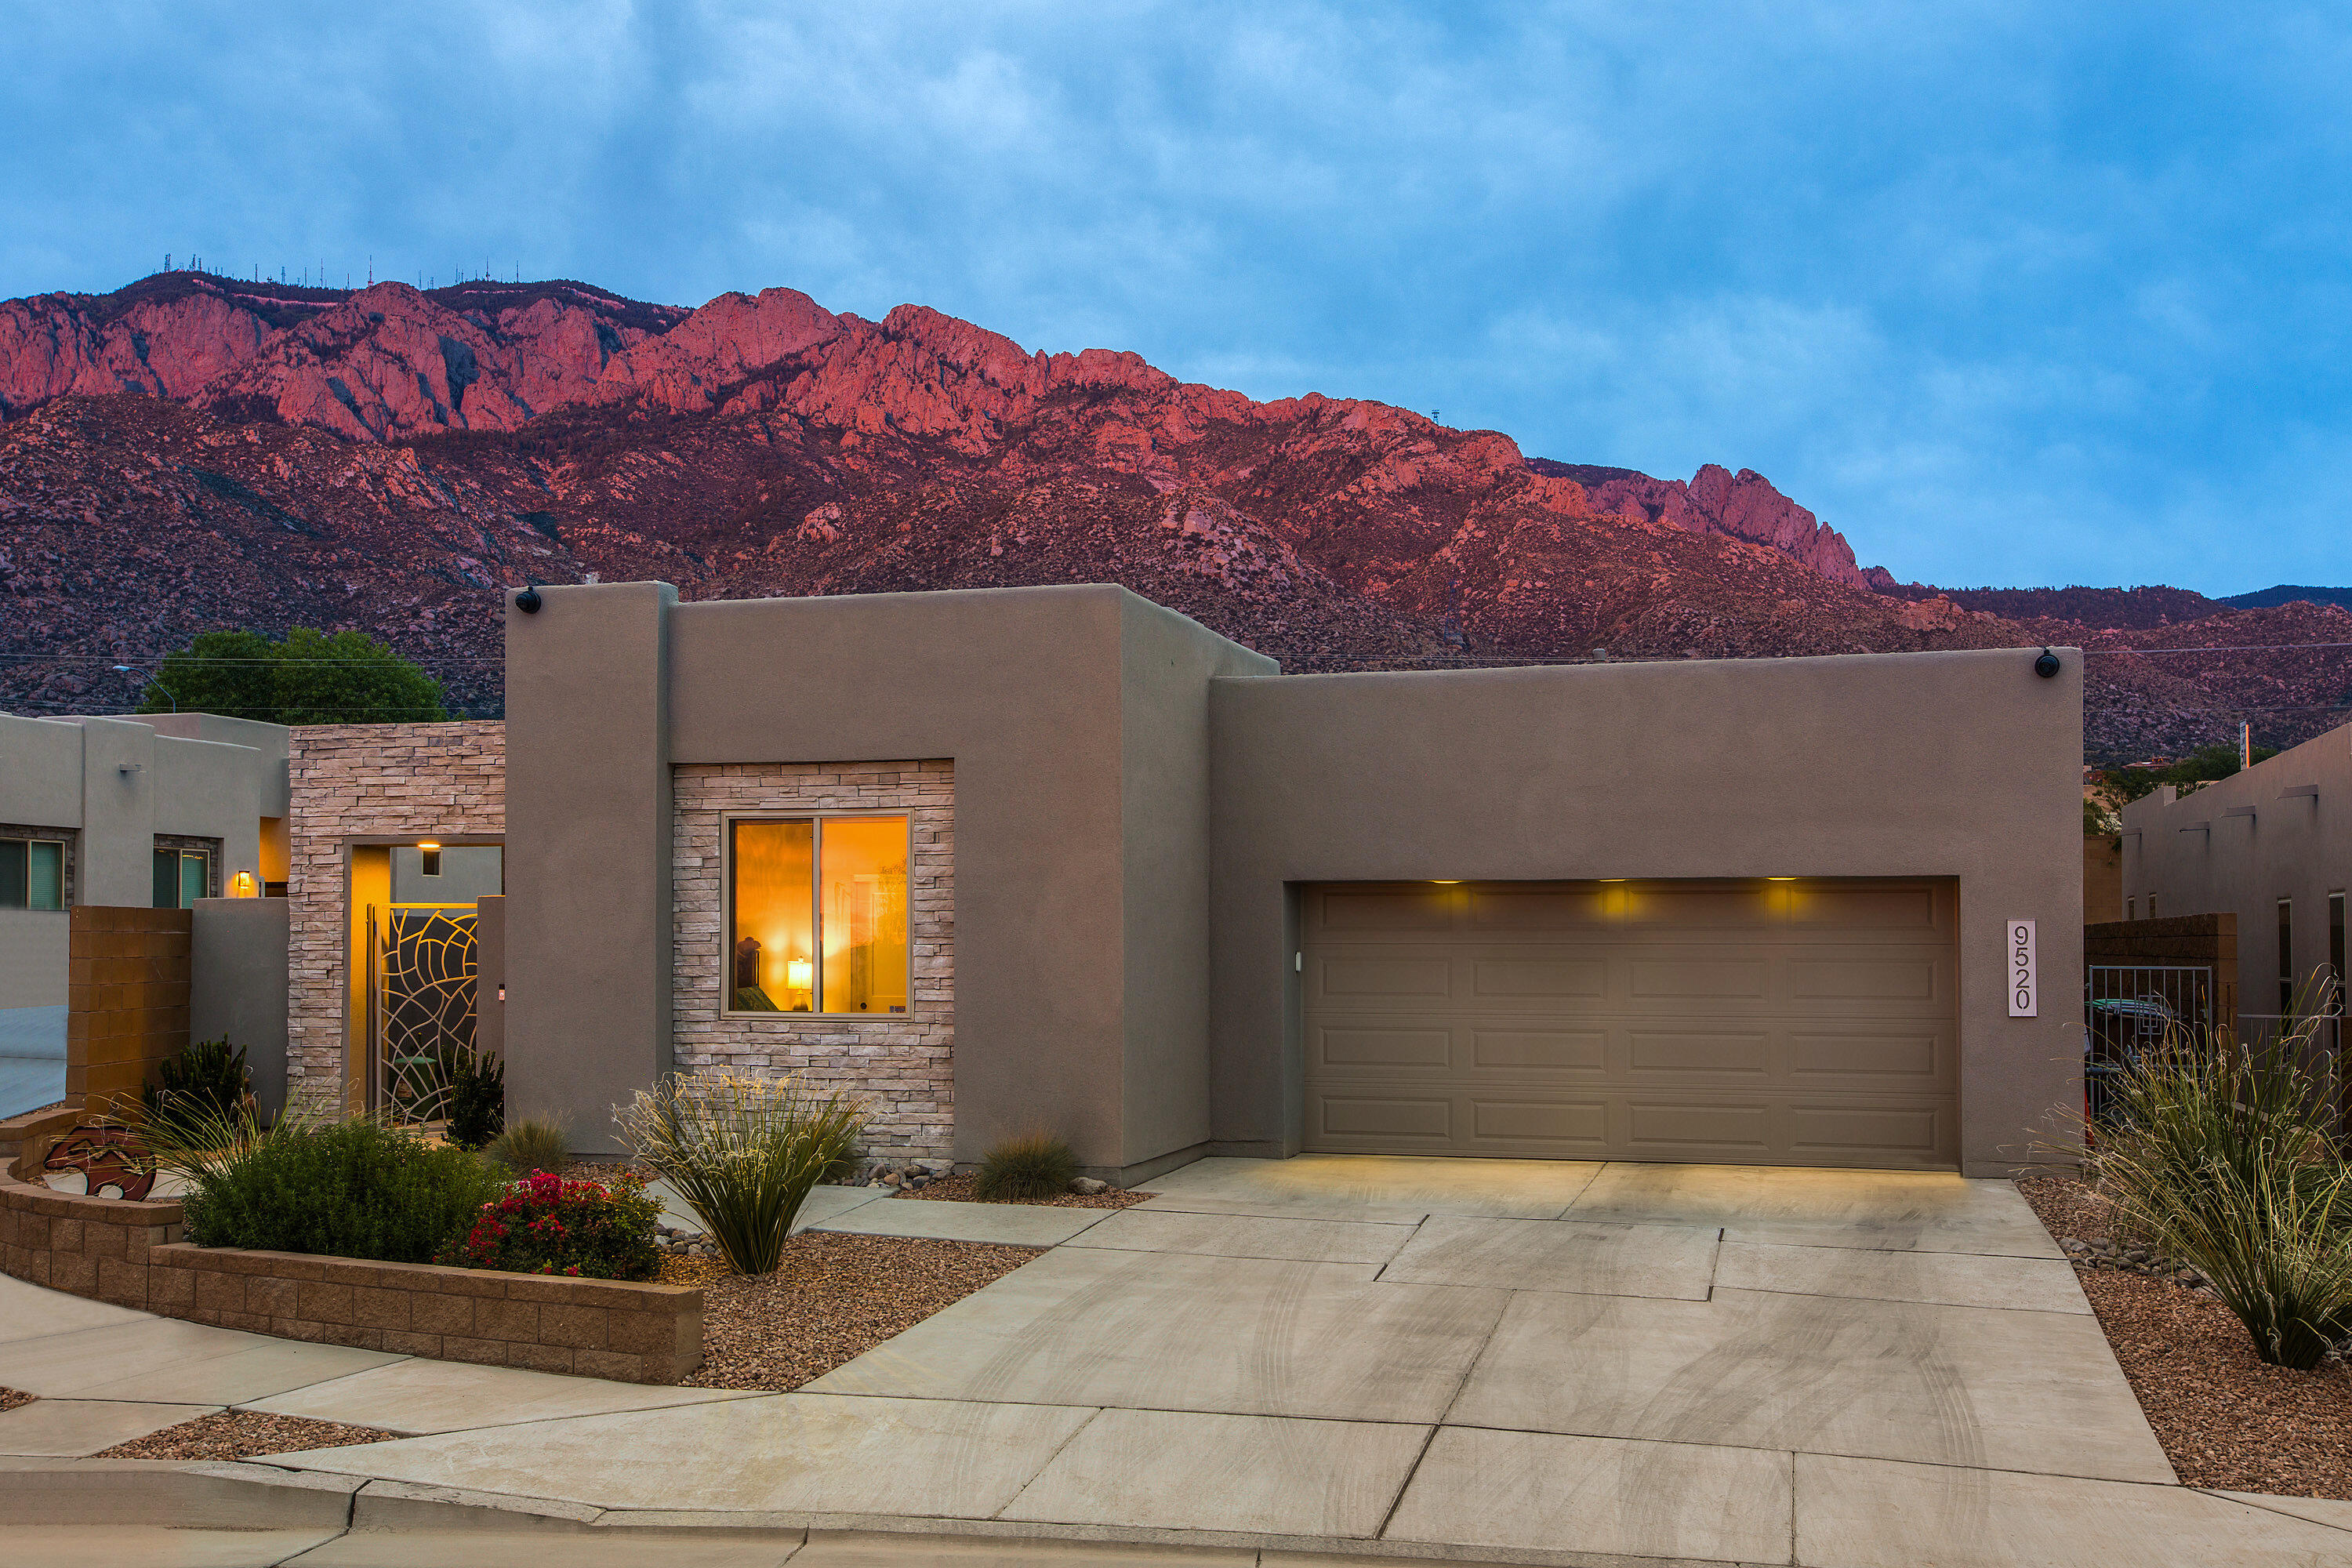 Stunning Contemporary Home by Scott Patrick. Architecturally appealing design from start to finish. Open Living, Dining and Kitchen arranged to take full advantage of the magnificent views of Sandia Crest. Indoor/Outdoor living with beautiful landscaping to take advantage of the awesome ABQ weather. Entertaining made easy with the flow of the kitchen, the island and the butler's pantry. Quartz Counters, Stainless Steel Appliances, 42'' cabinets and generous storage. 4 bedrooms, 2.5 baths, 2+ car garage. The Owners Suite offers a separate vessel tub and shower, walk in closet and mountain views.  14 panels of Owned Solar will keep your electric bills at a minimum.  Tray ceilings, fans, custom LED lighting, full home water filter and many more features to discover with your visit.